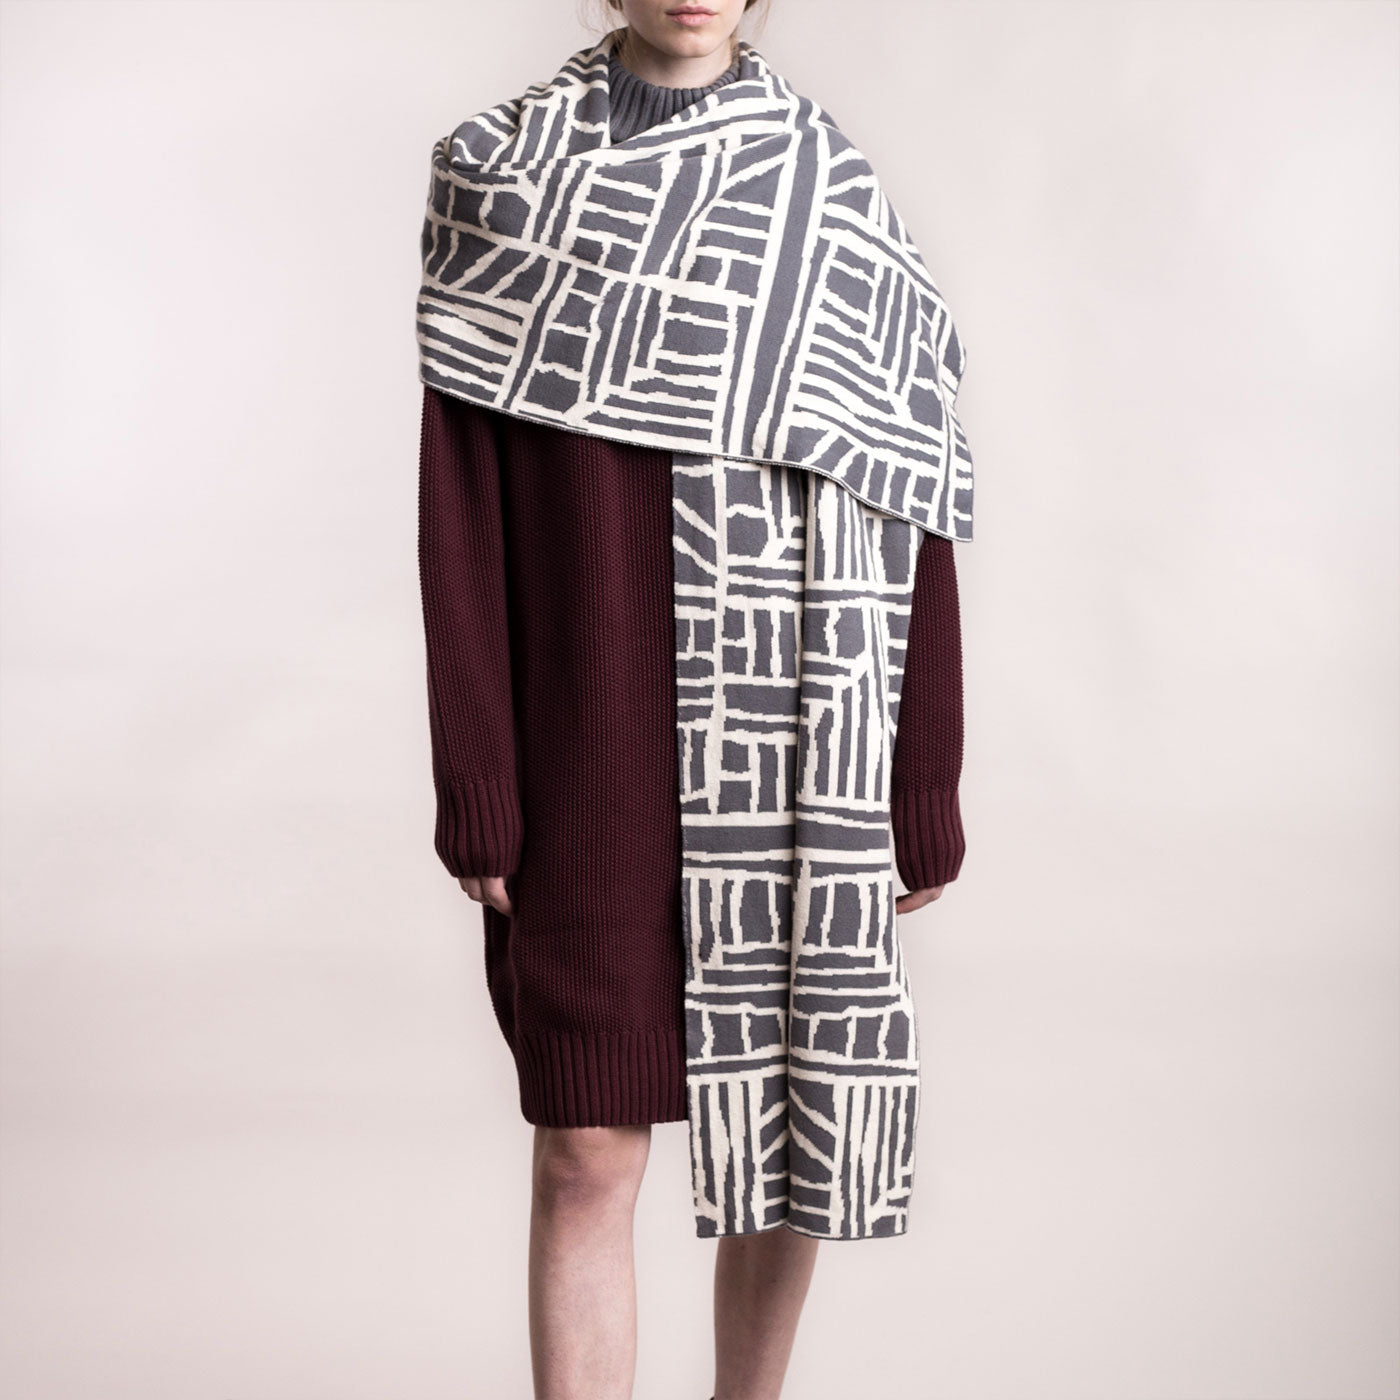 The model wears a grey and cream, sustainable organic cotton, knitted arty bricks scarf, close up front.